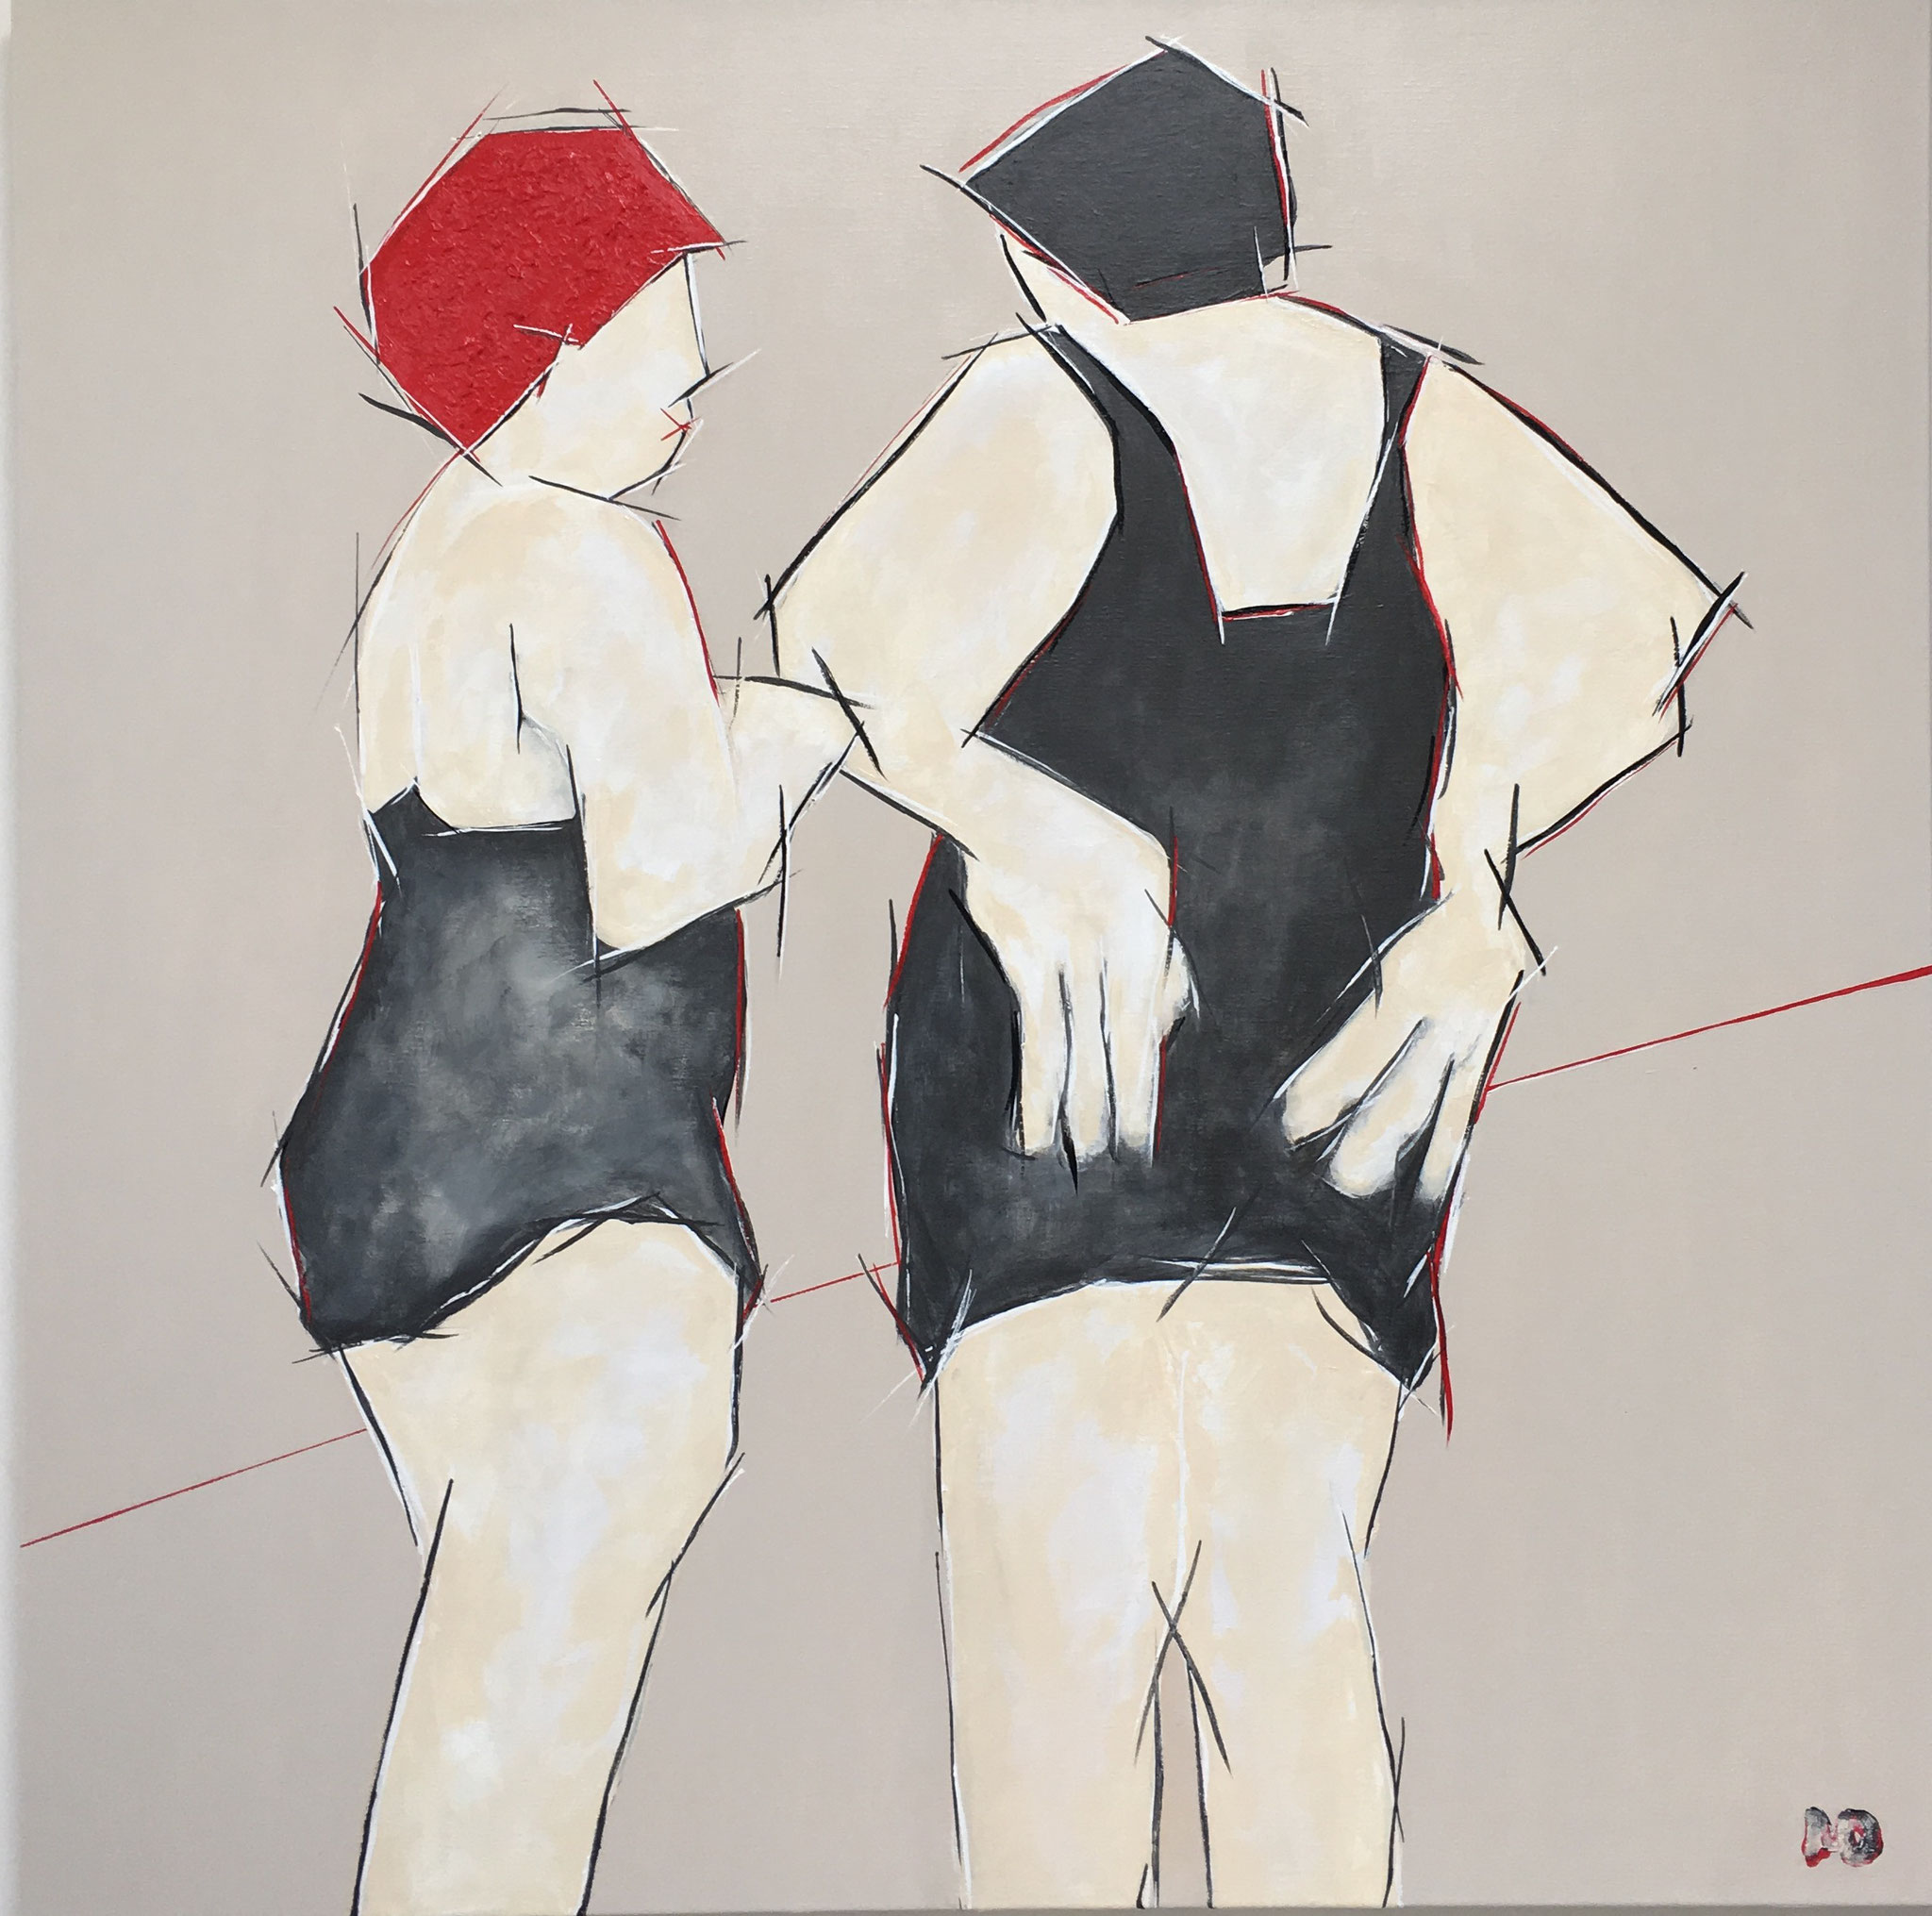 Girls' talk - Acryl - 120x120